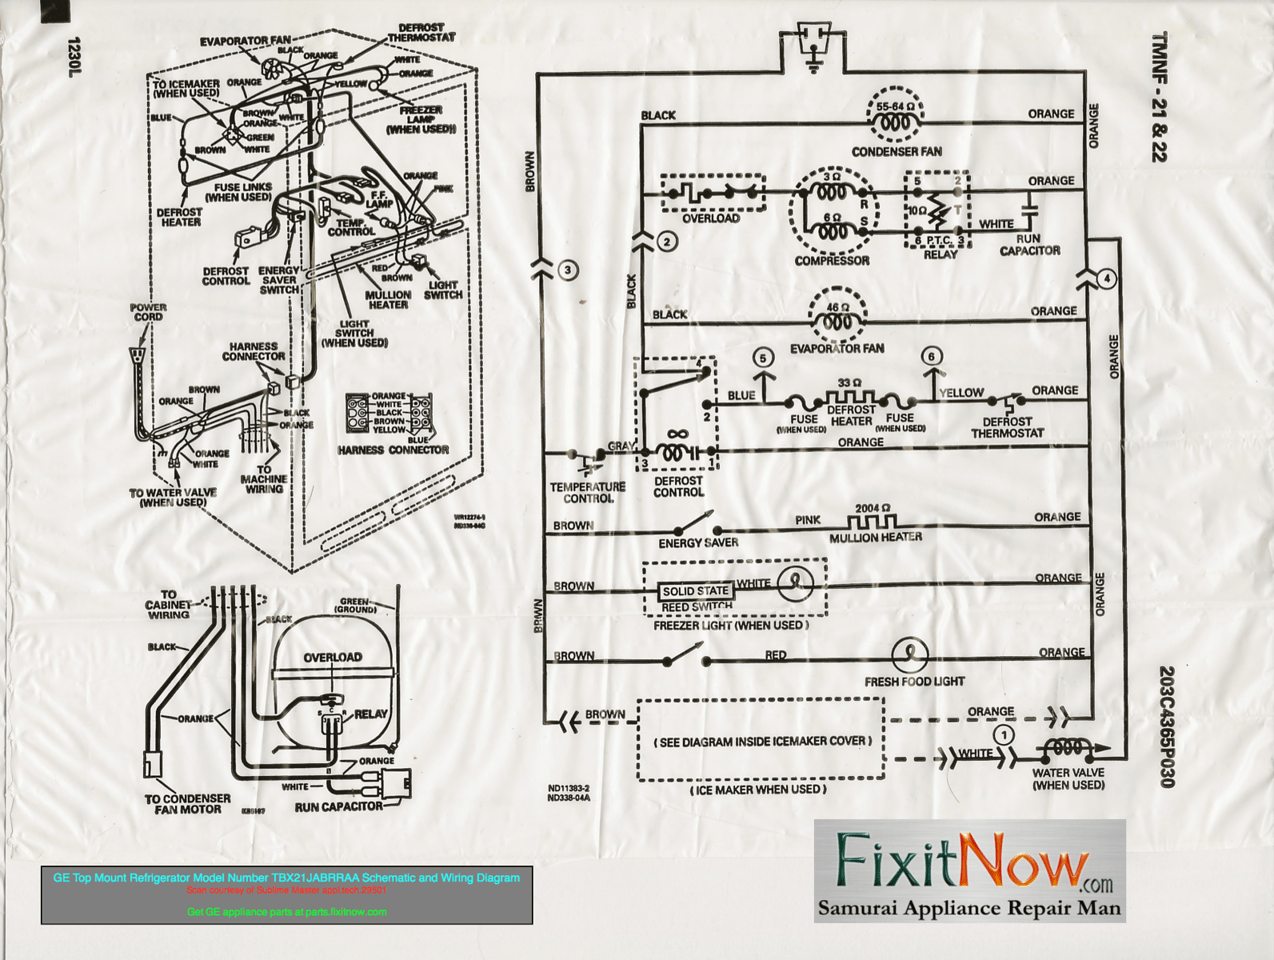 Wiring Diagram For Ge Microwave Oven Moreover Sunbeam ... on